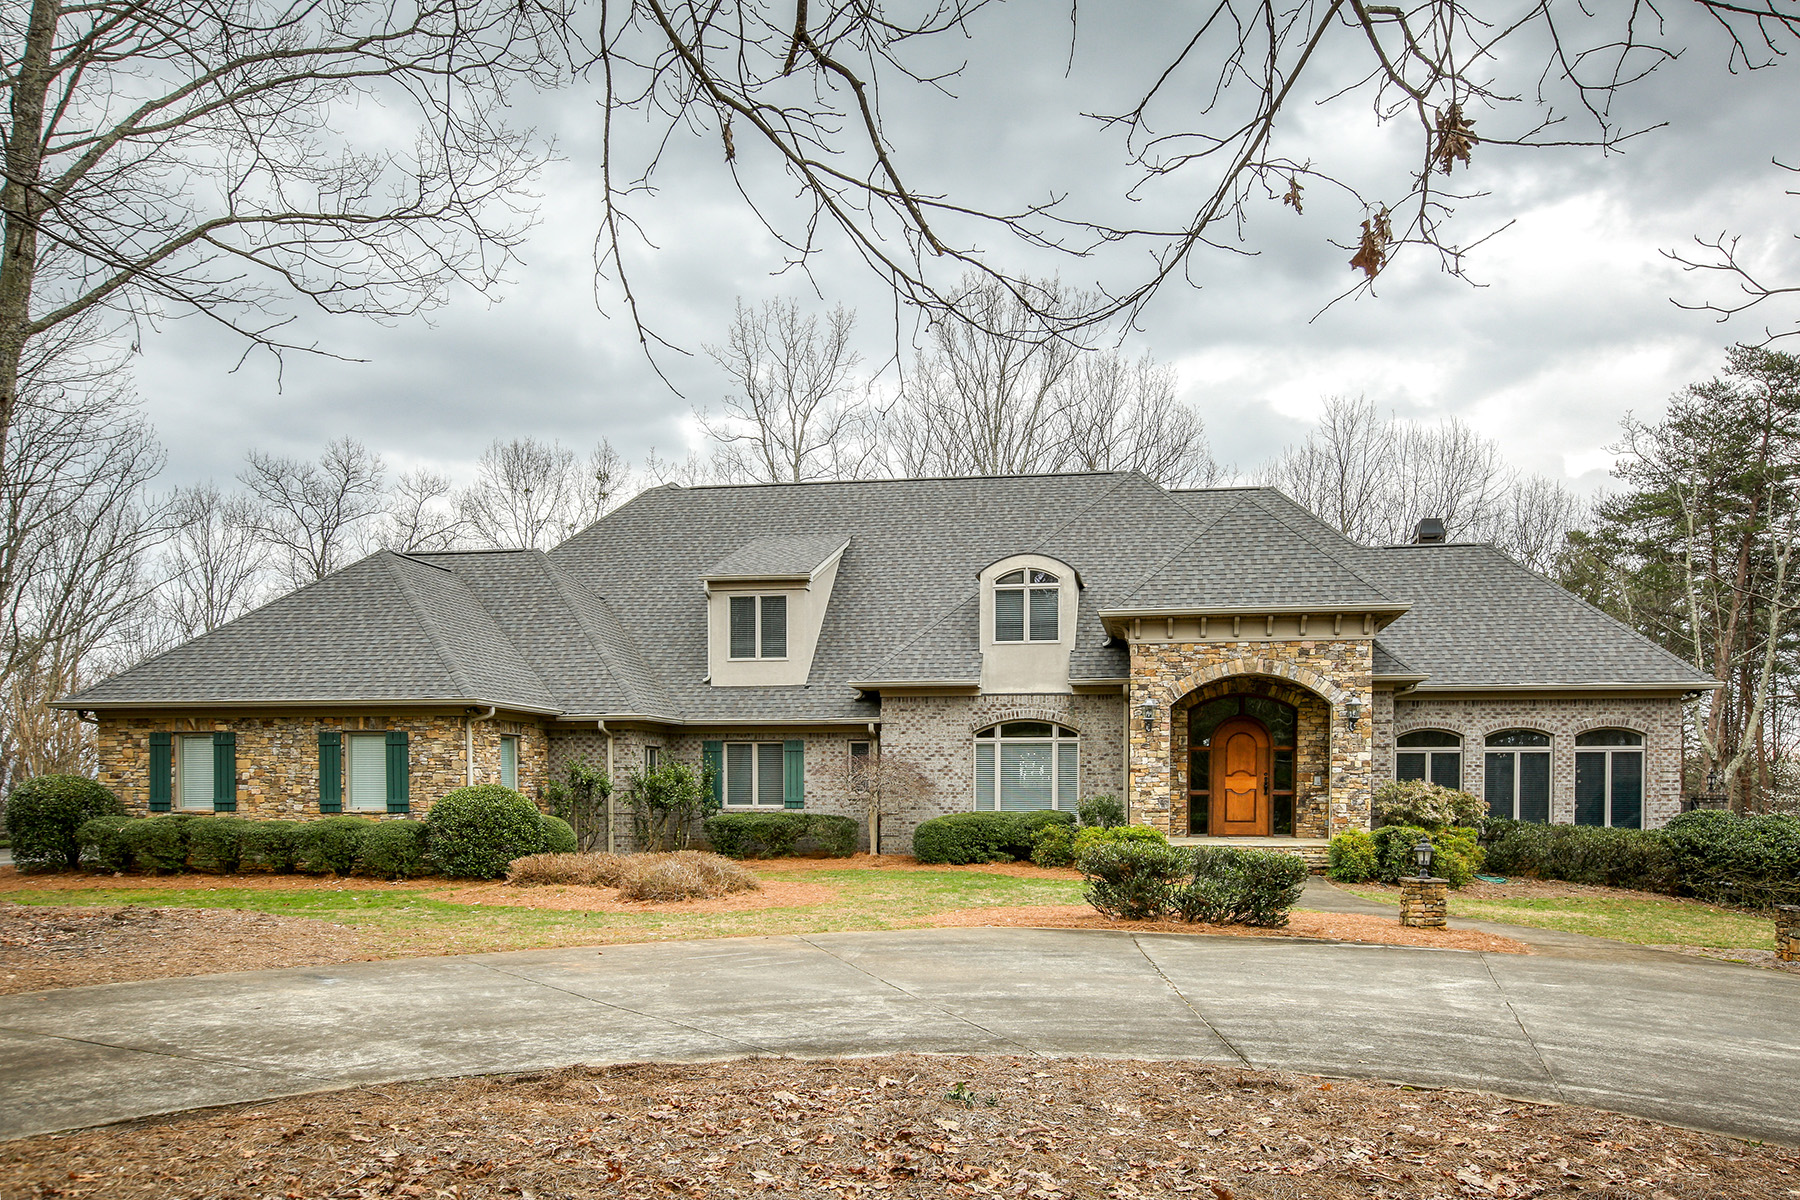 Single Family Homes por un Venta en Private Estate on +/-58 Acres with Seasonal Mountain Views 5740 Steve Tate Hwy, Marble Hill, Georgia 30148 Estados Unidos